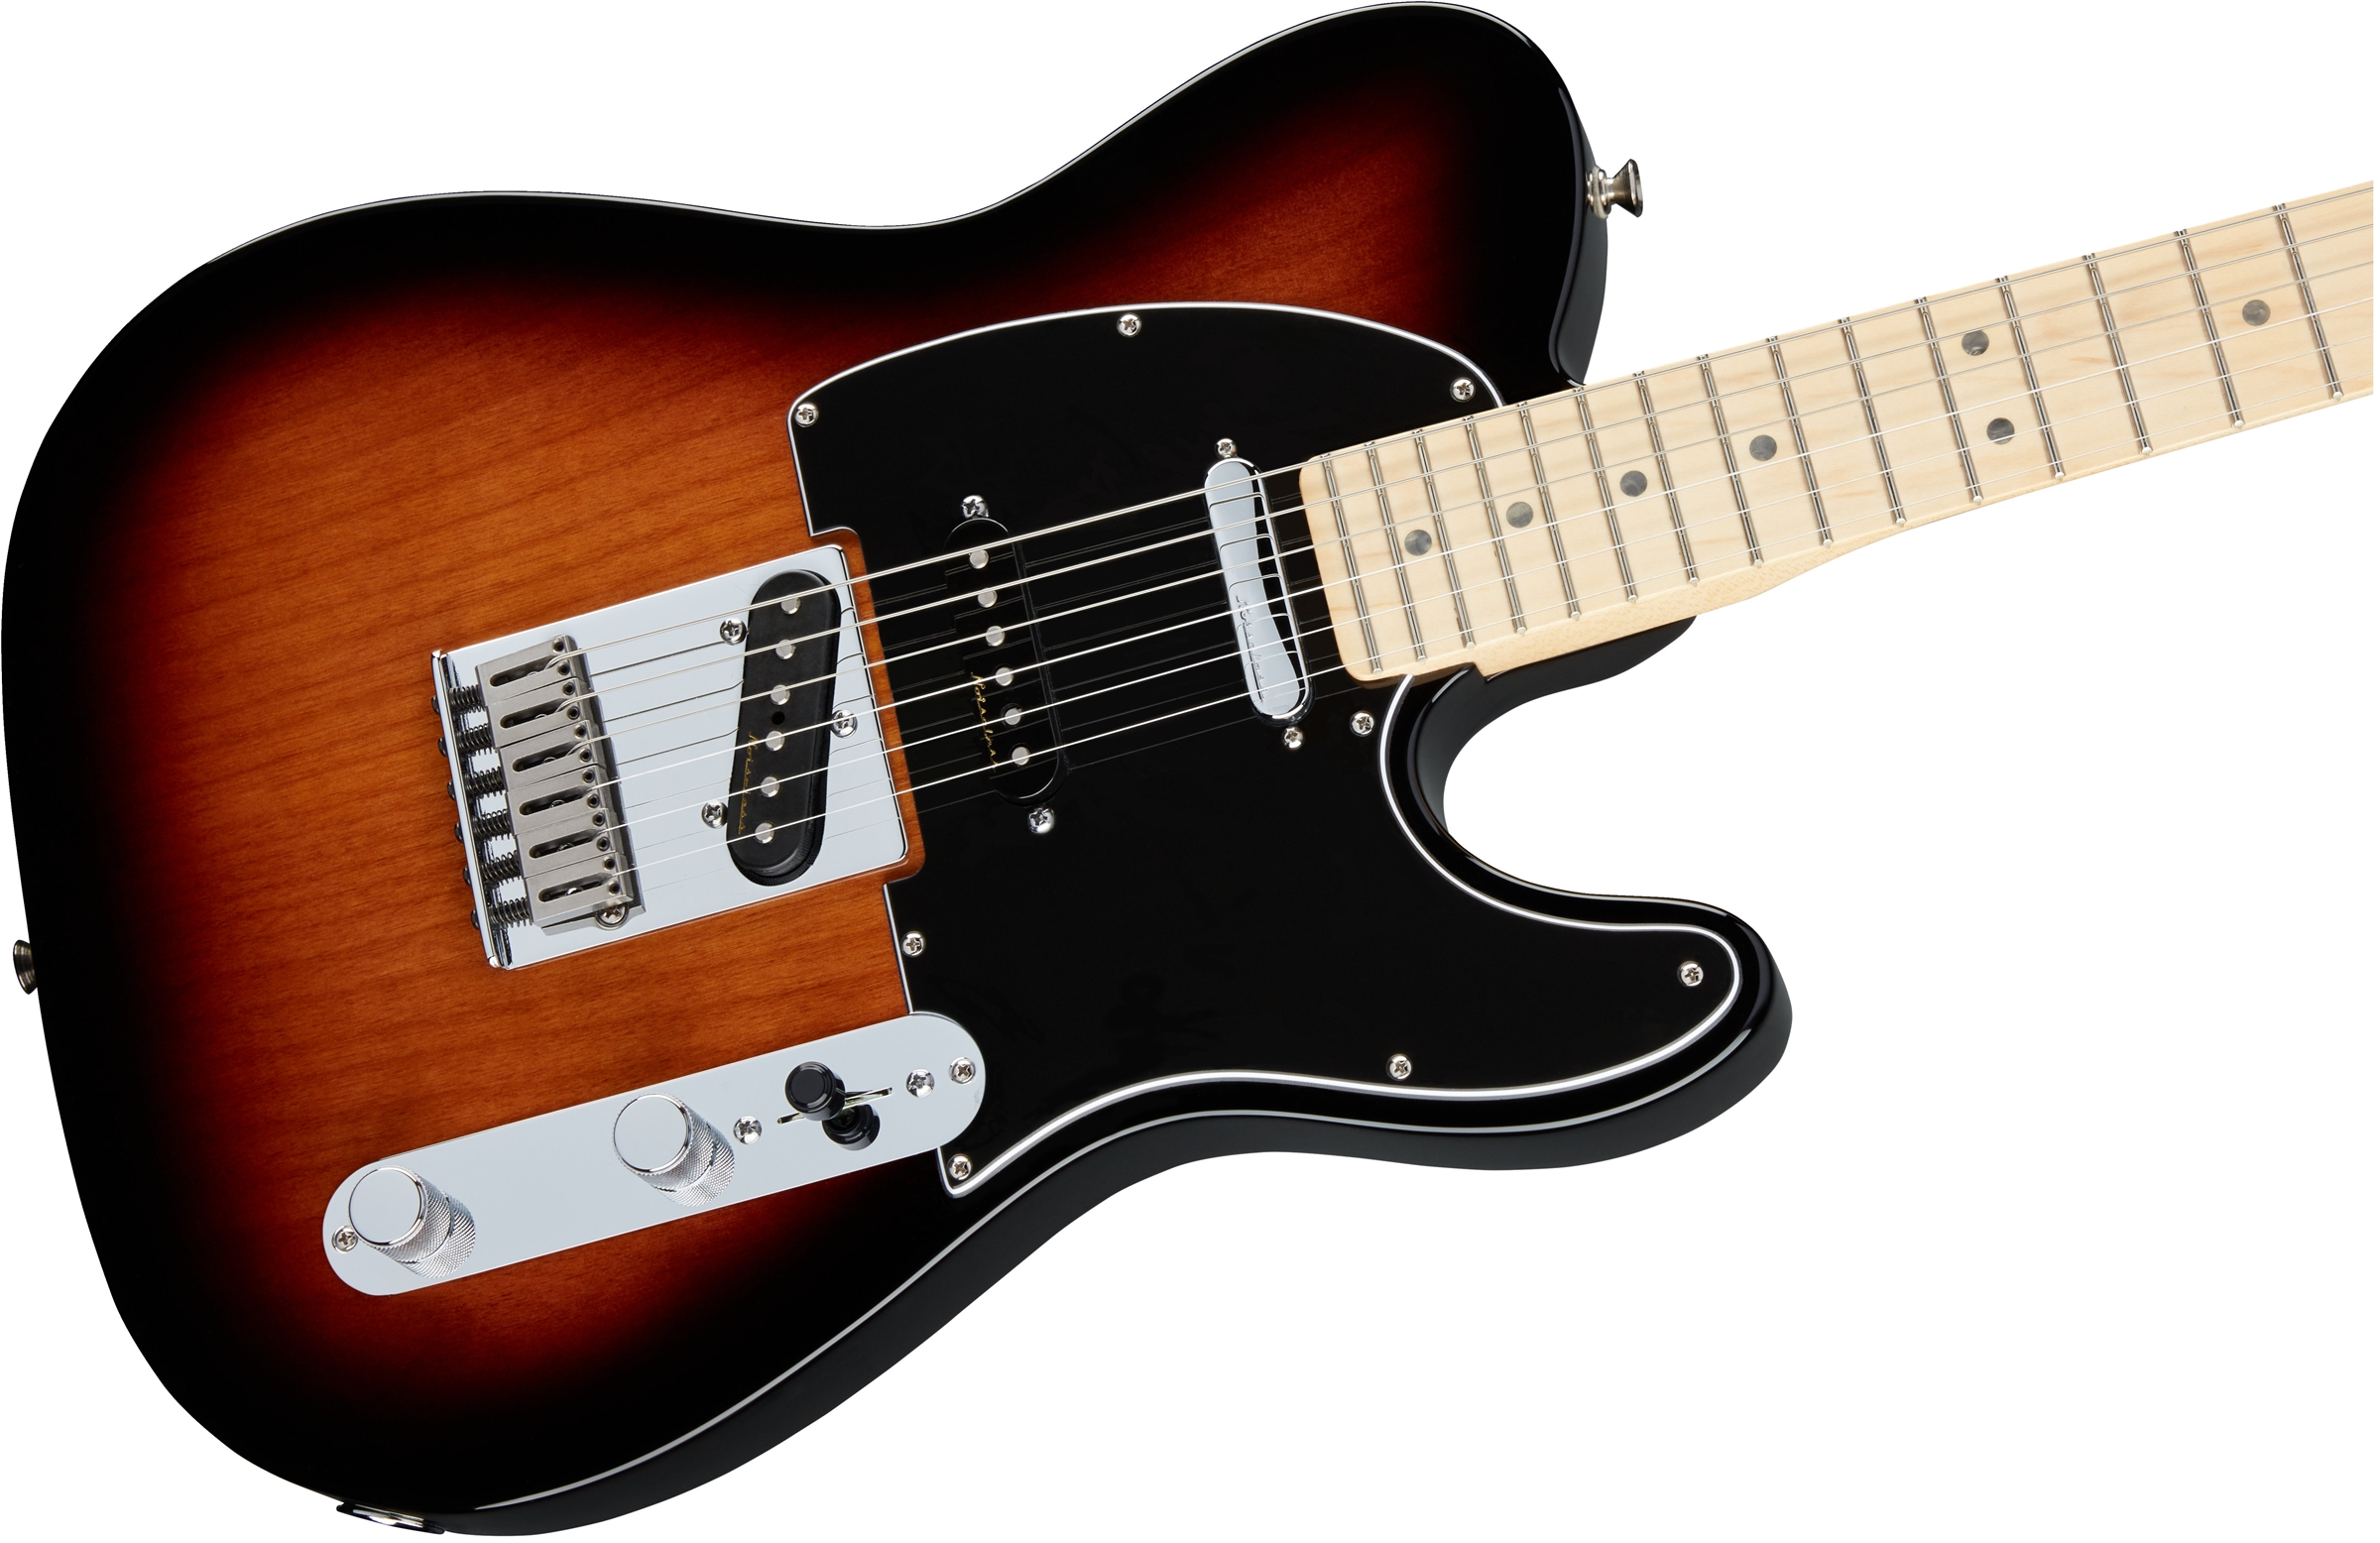 Deluxe Nashville Tele Electric Guitars Re 5way Switch With A Two Pickup Telecaster Guitar Forum